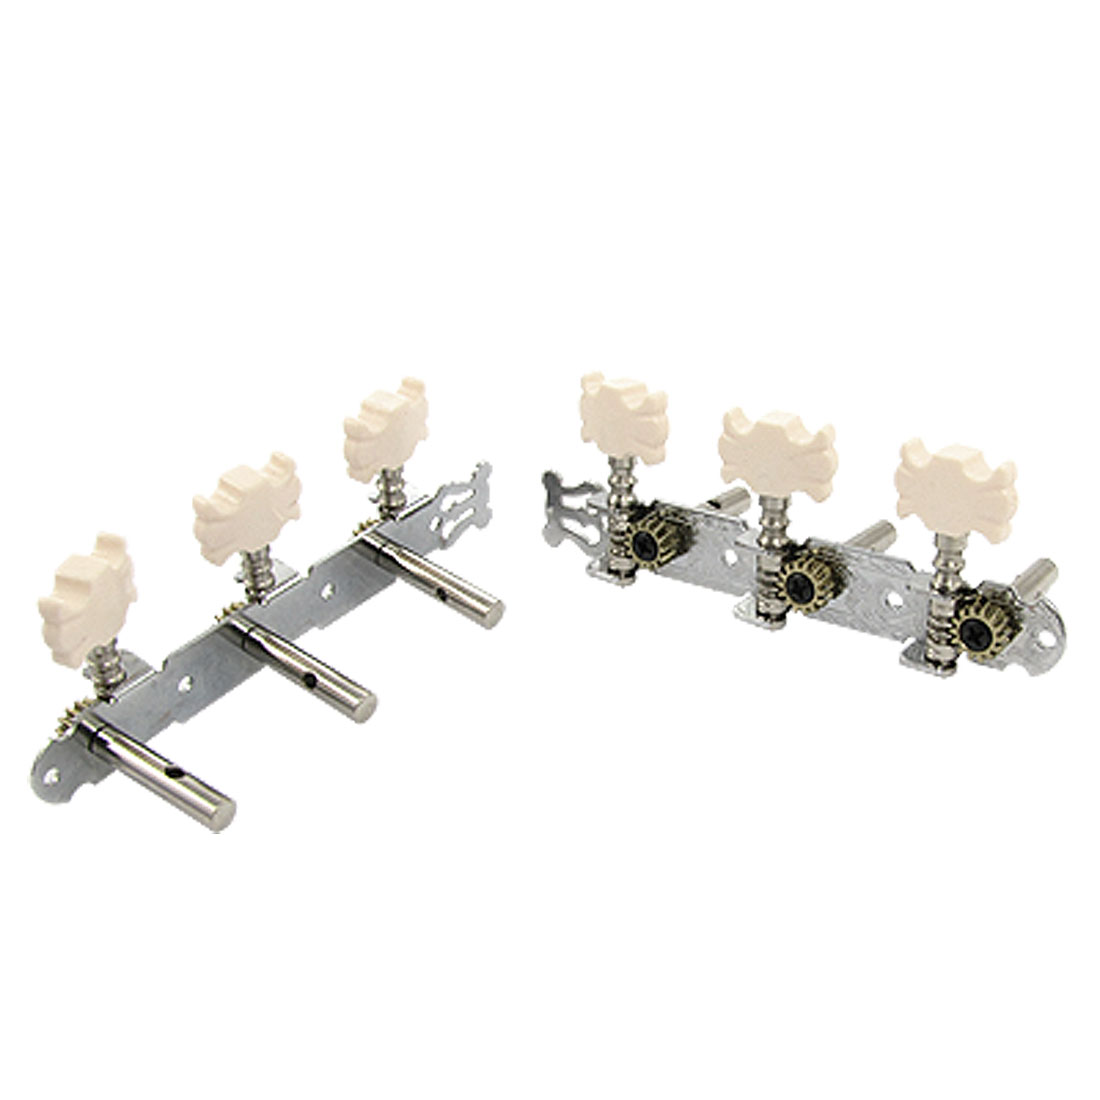 2 Pcs Guitar String Tuning Peg Machine Head Screw Type Tuner